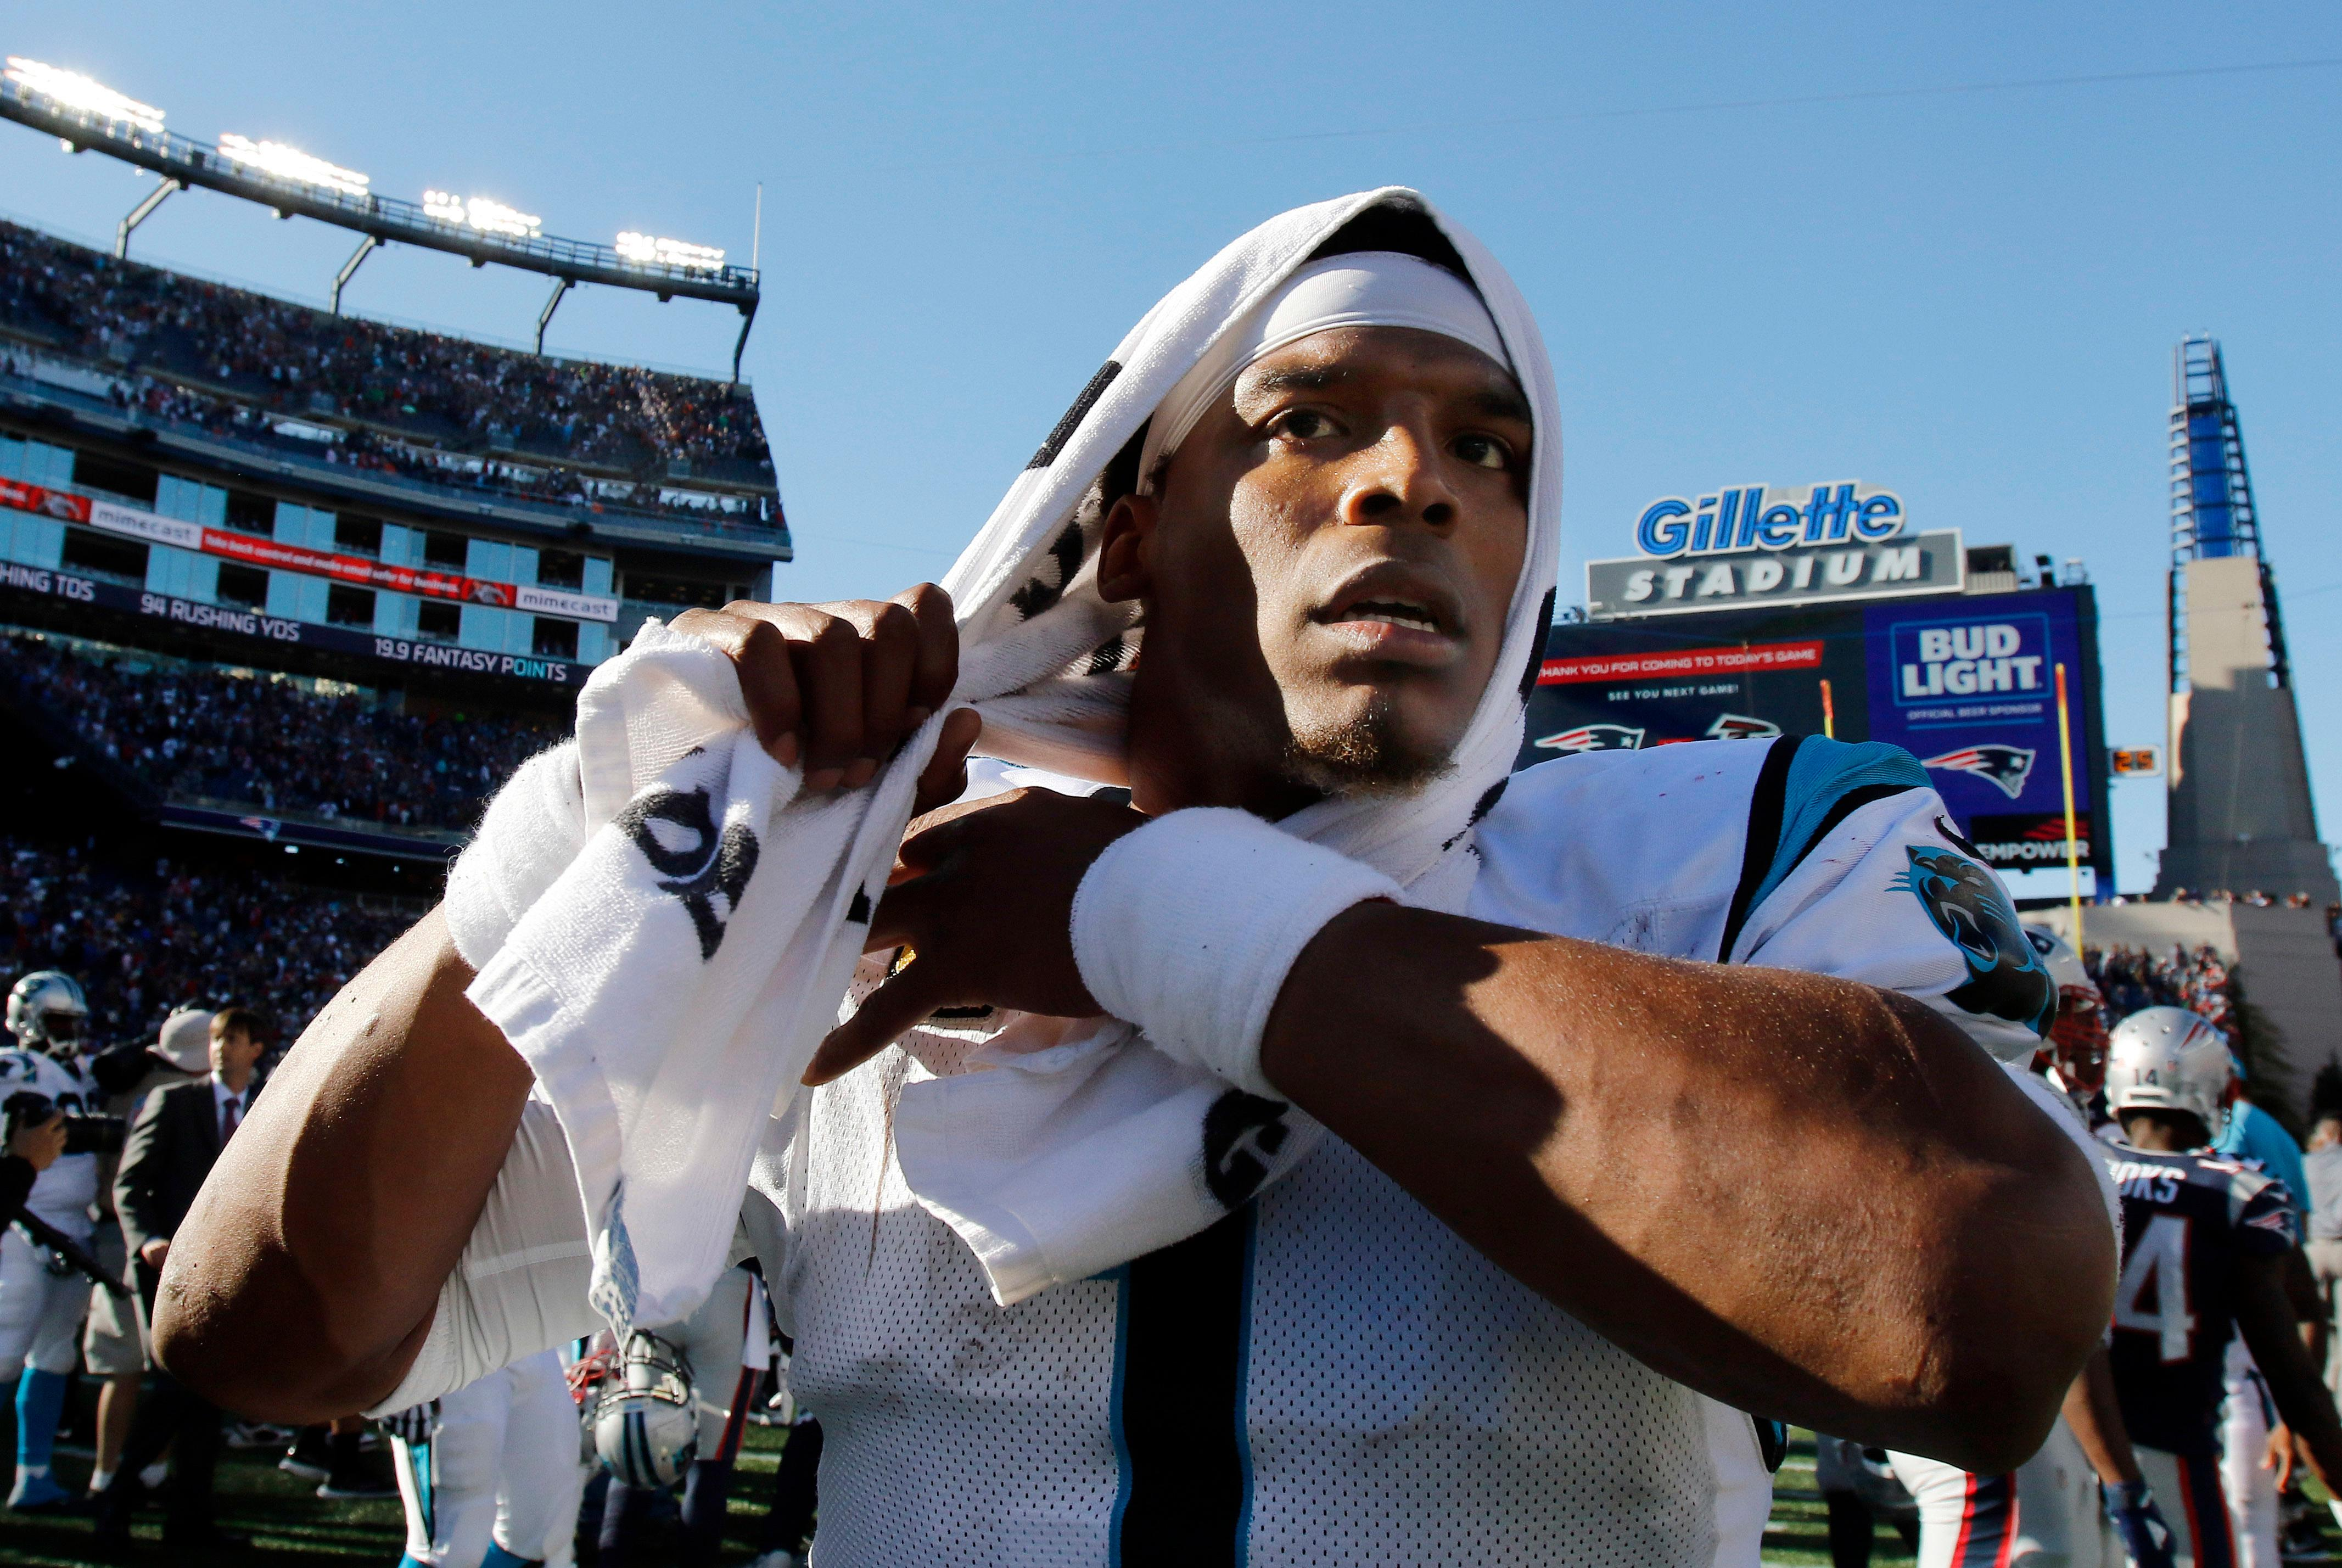 Carolina Panthers quarterback Cam Newton leaves the field after a 33-30 victory over the New England Patriots in an NFL football game, Sunday, Oct. 1, 2017, in Foxborough, Mass. (AP Photo/Bill Sikes)